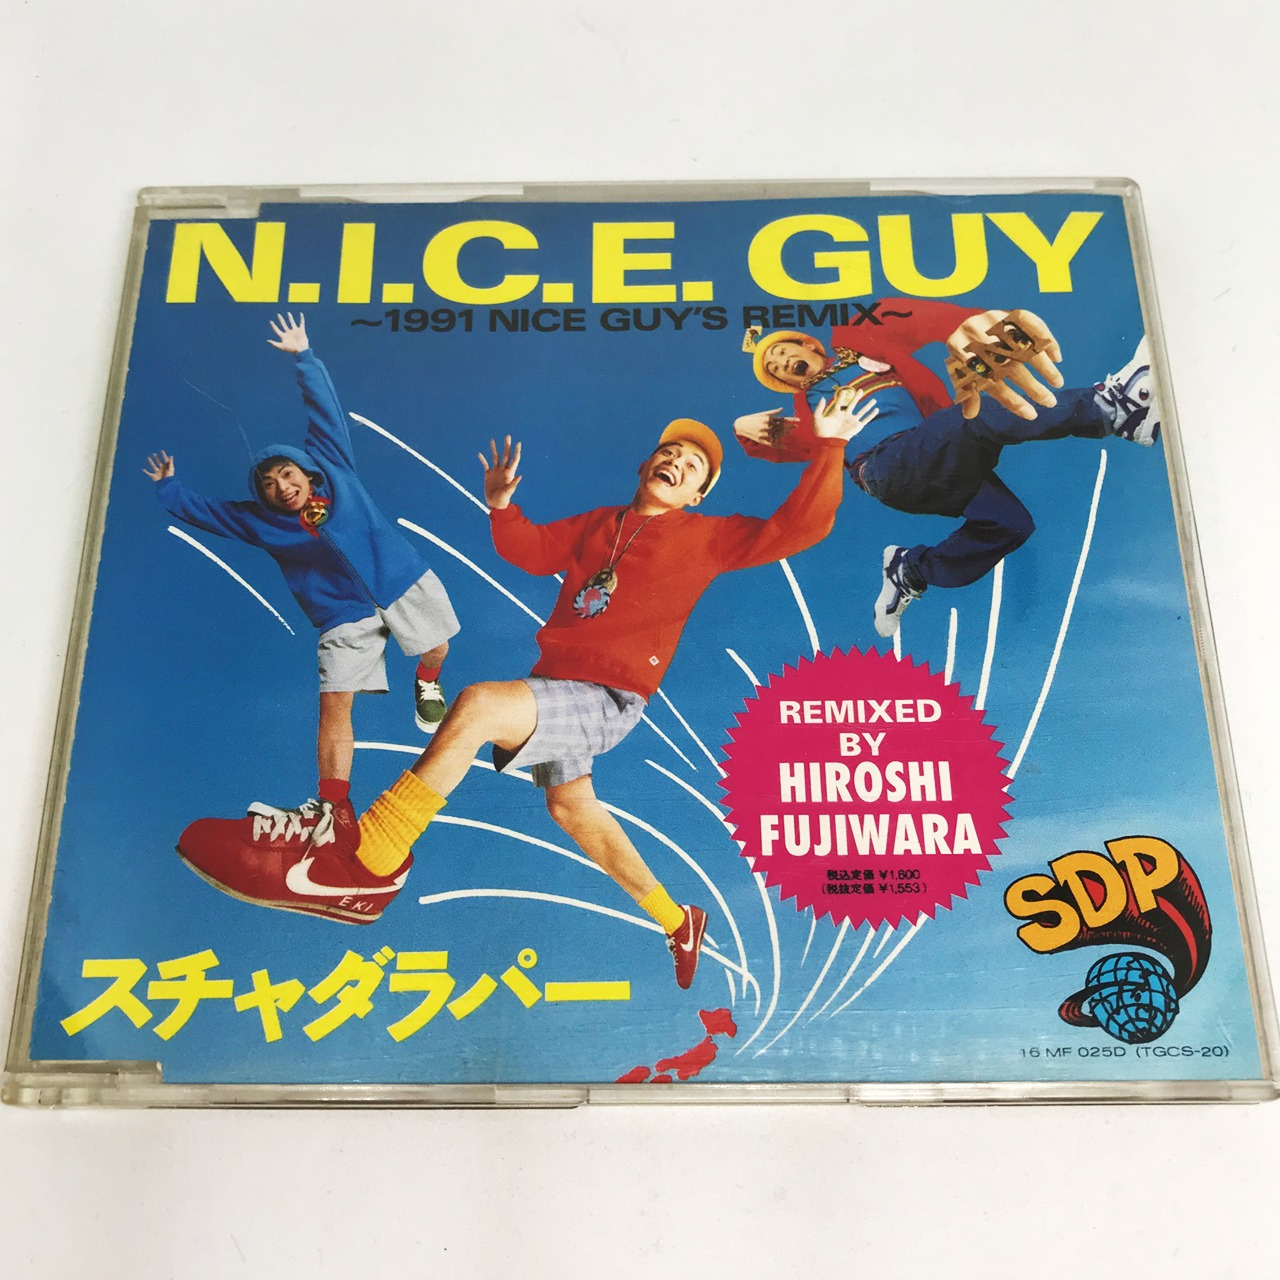 スチャダラパー / N.I.C.E.GUY ~1991 NICE GUYS REMIX~